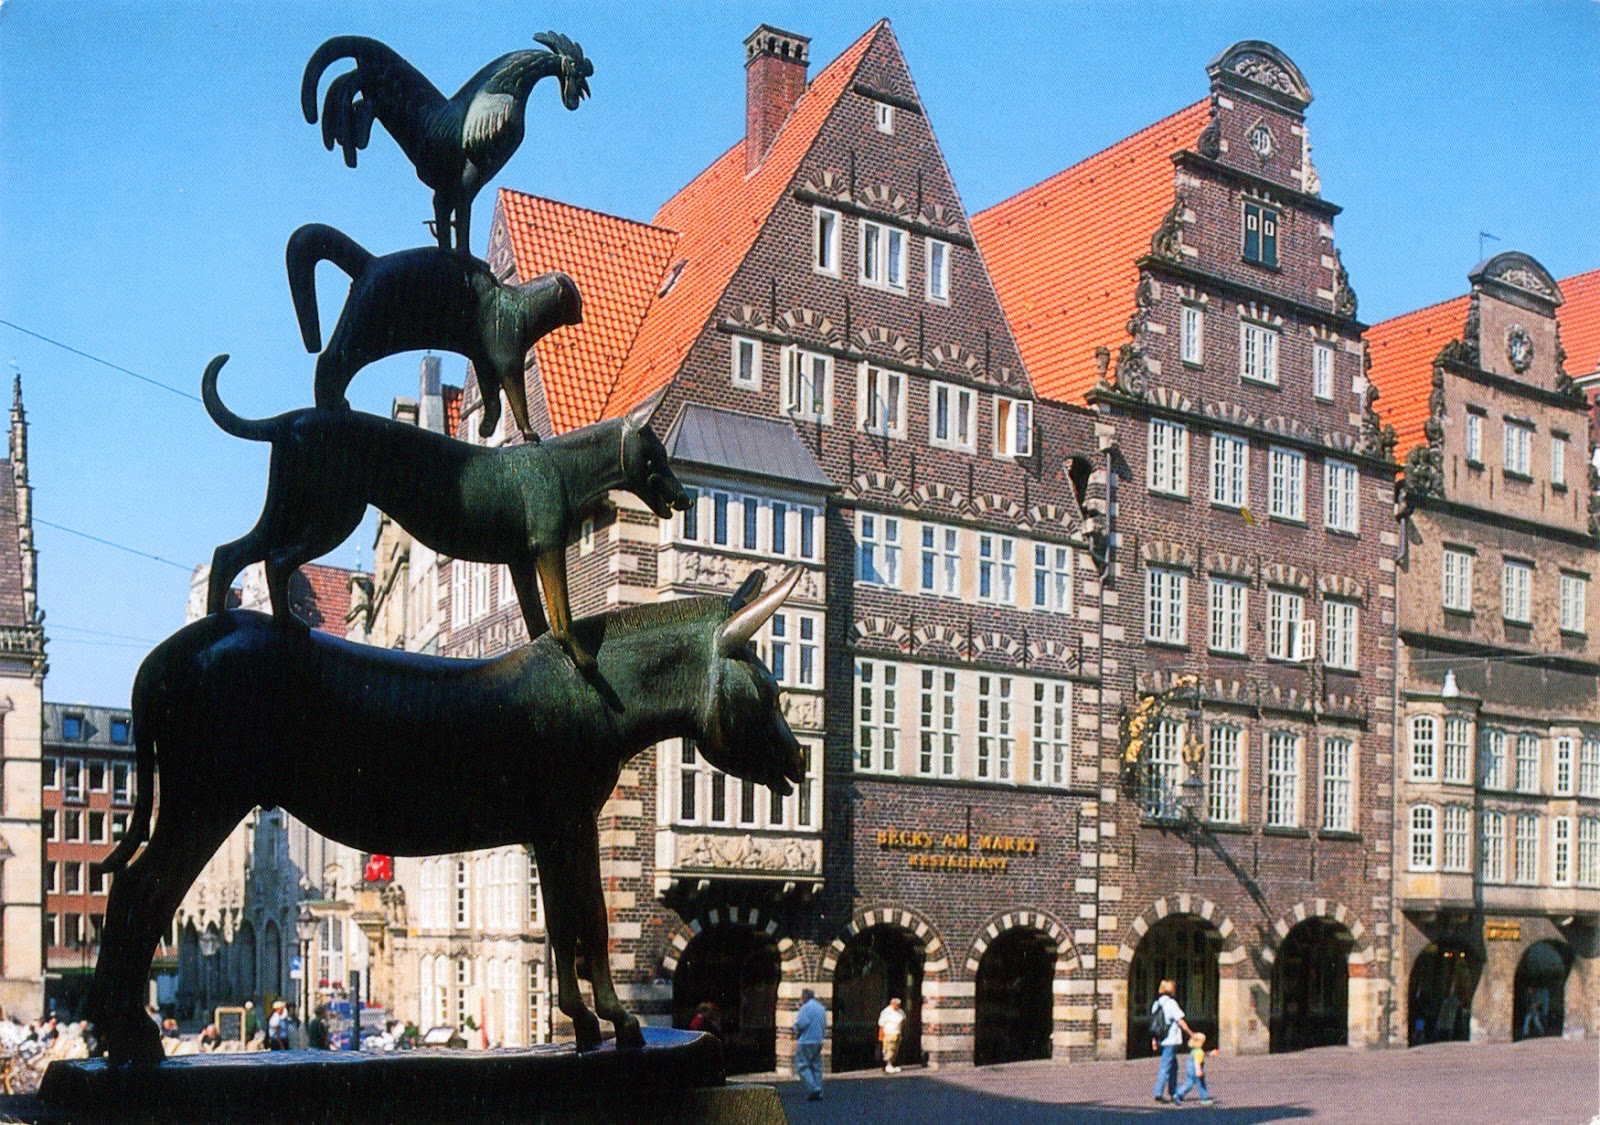 world come to my home 0915 germany bremen the statue of the town musicians. Black Bedroom Furniture Sets. Home Design Ideas